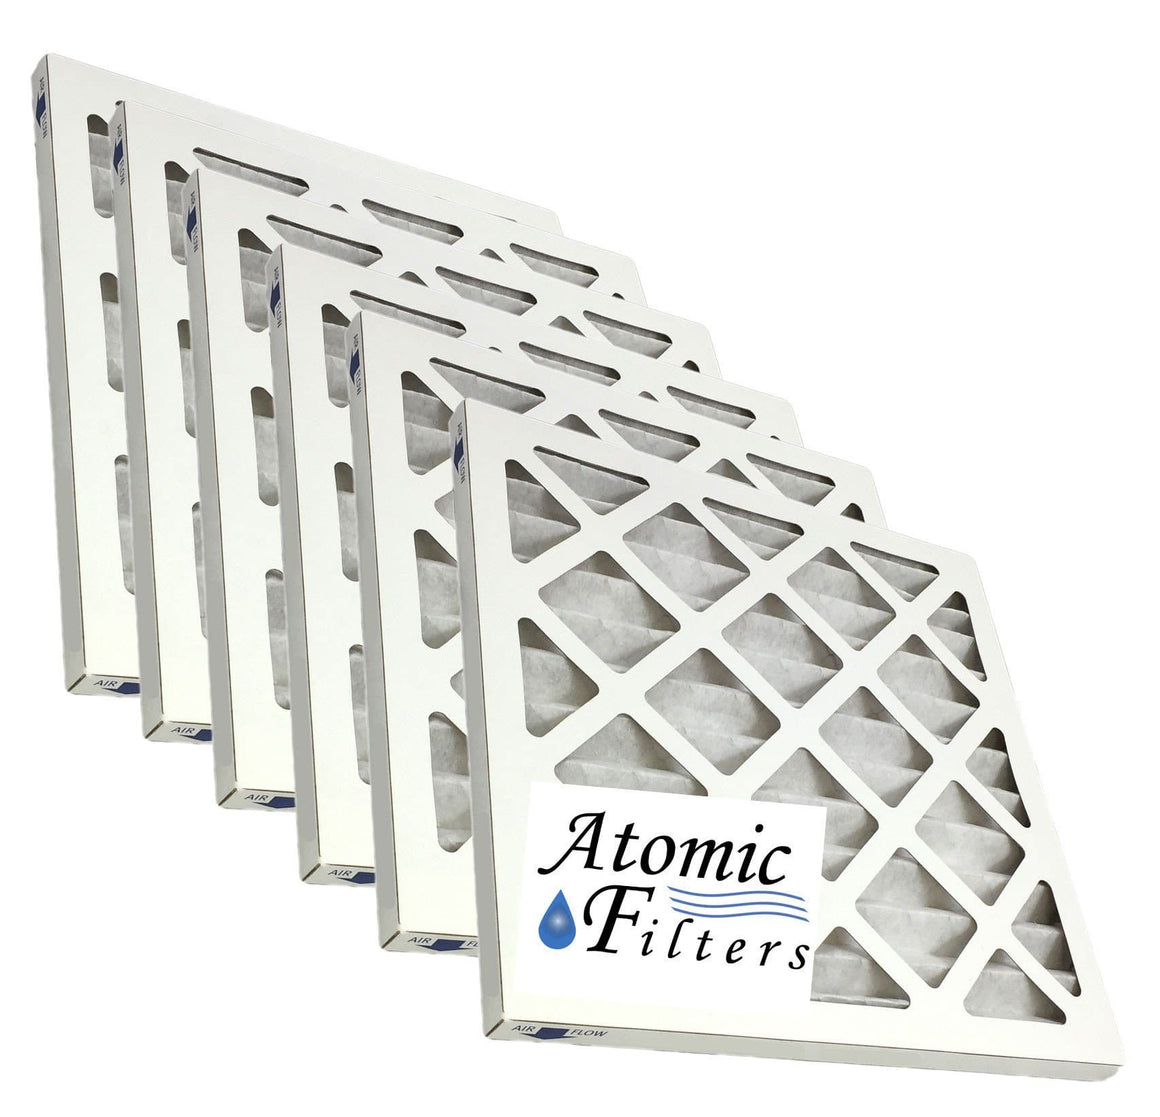 18x18x1 Merv 13 Pleated Geothermal Furnace Filter - Case of 6 by Atomic Filters